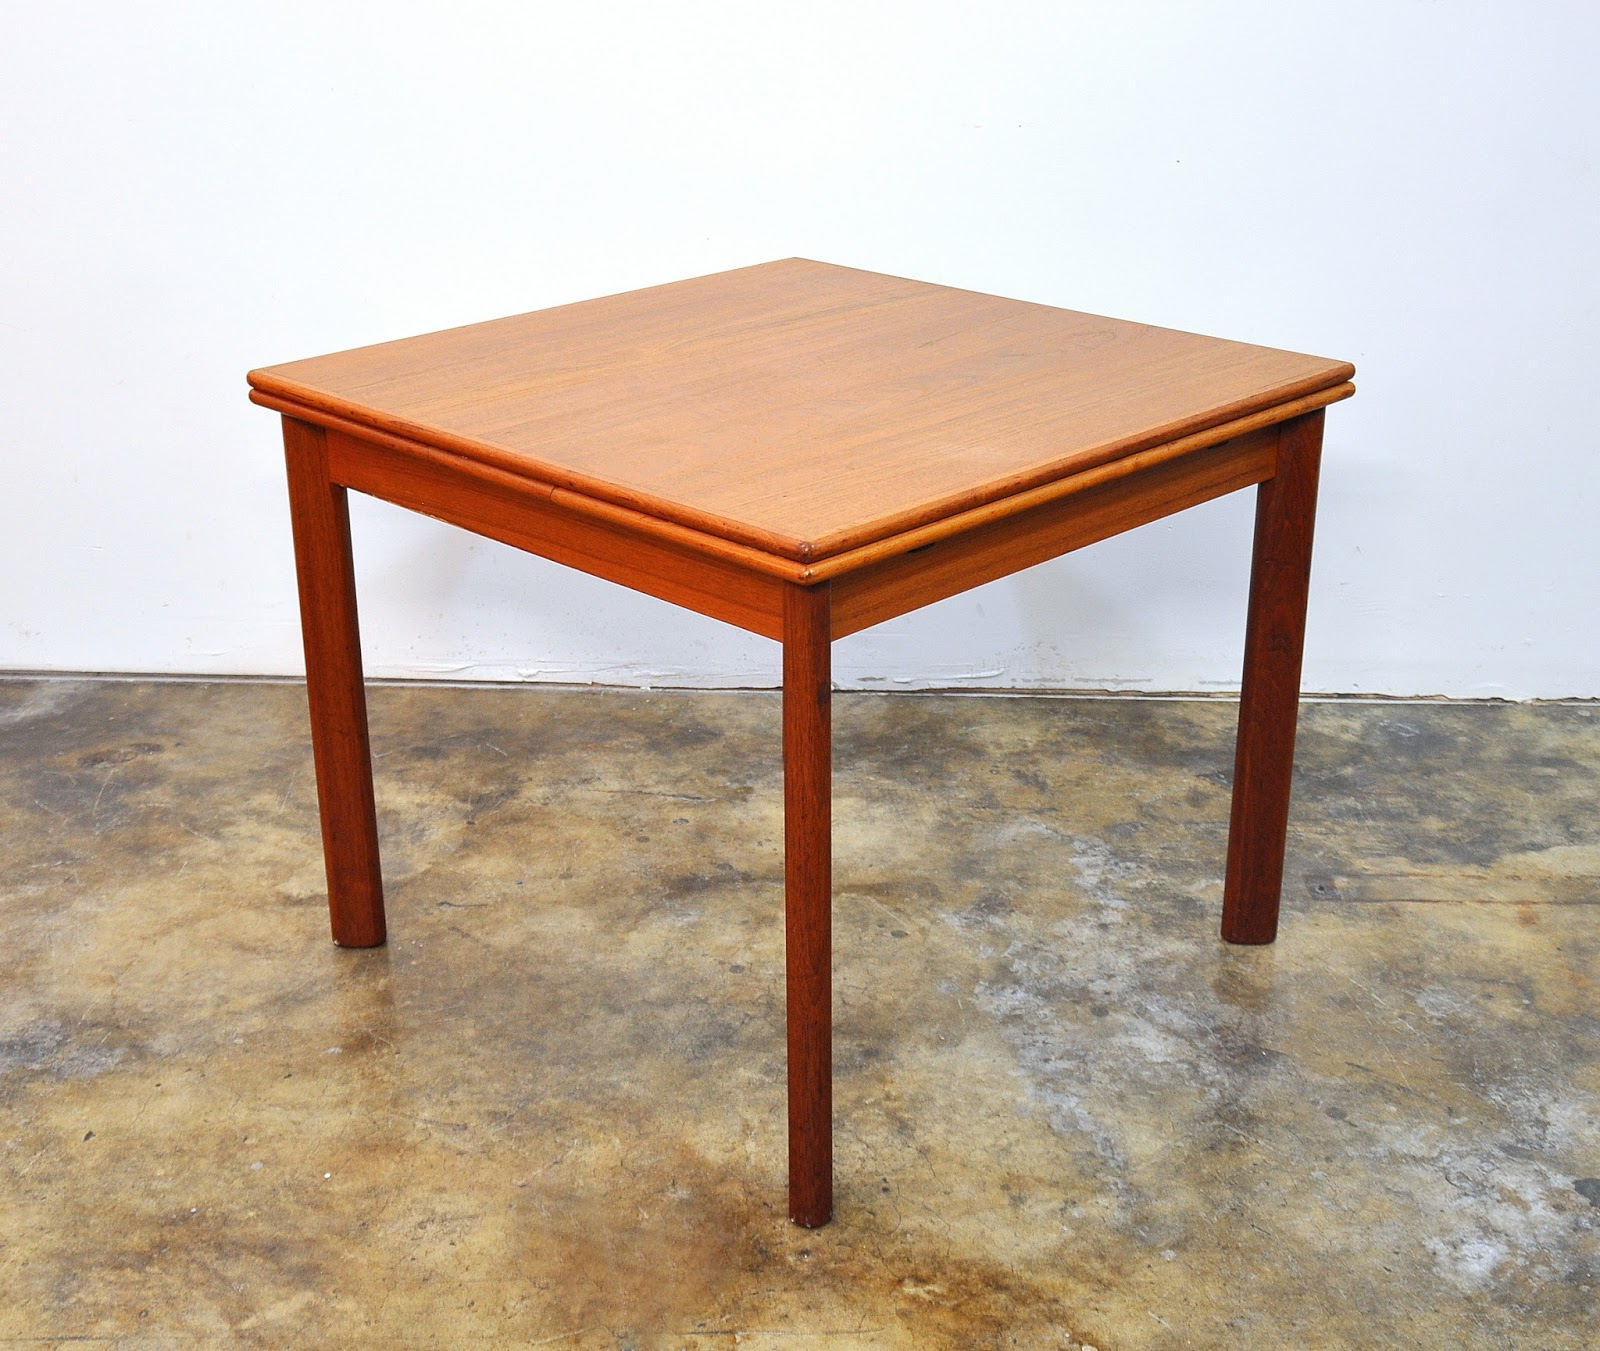 Expandable Dining Room Tables Modern: SELECT MODERN: BRDR. Furbo Teak Expandable Dining Room Table